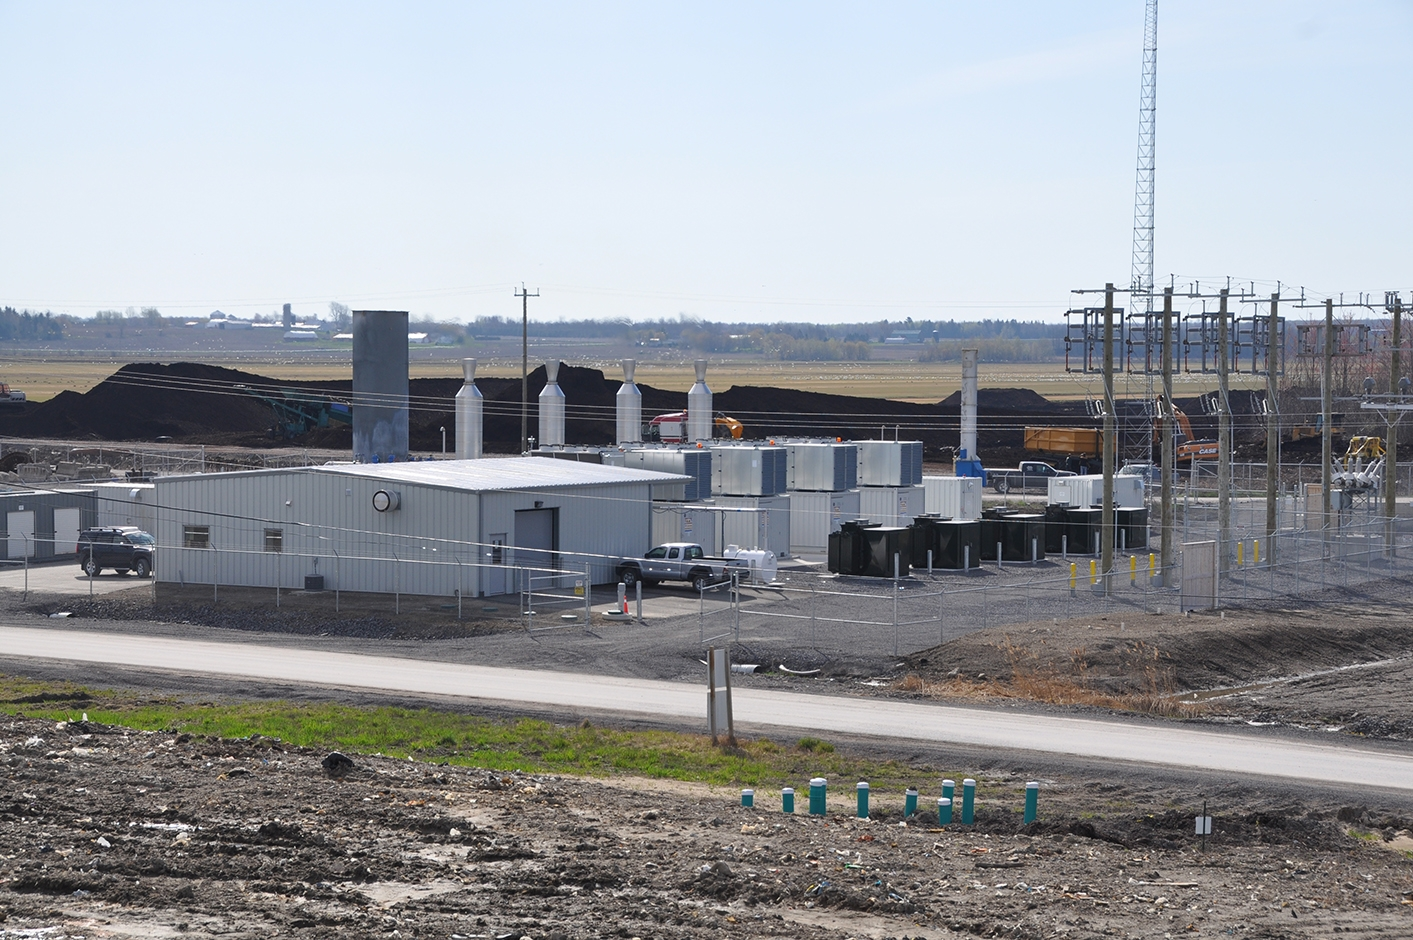 Moose Creek Landfill Generating Facility